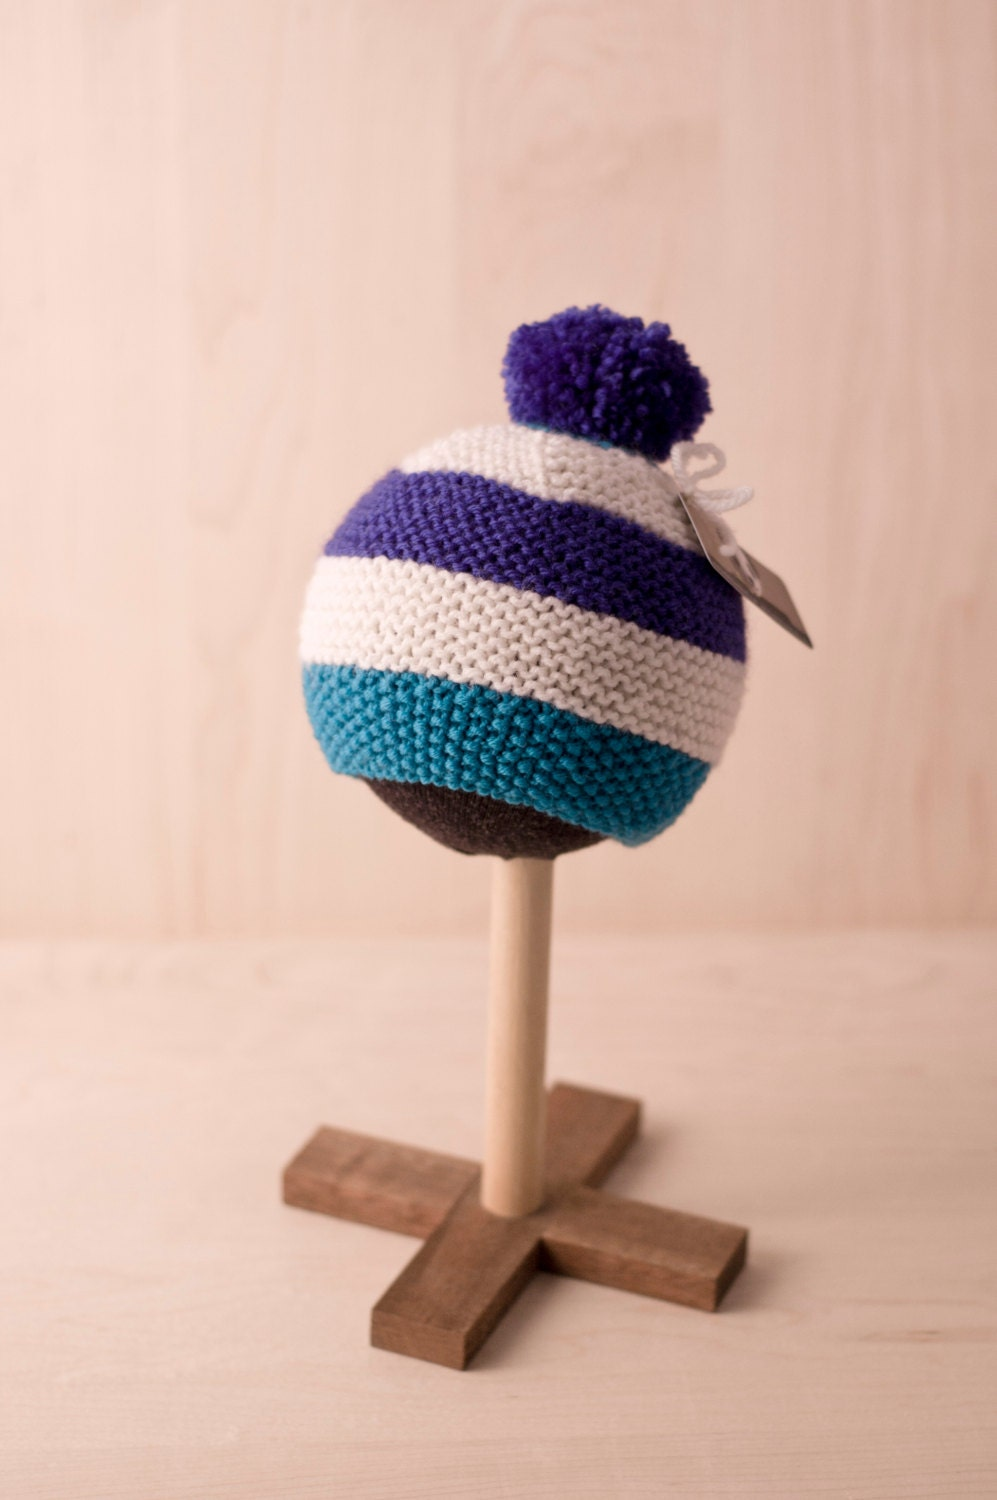 baby pompom knitted striped Bobble hat in blue cream and teal